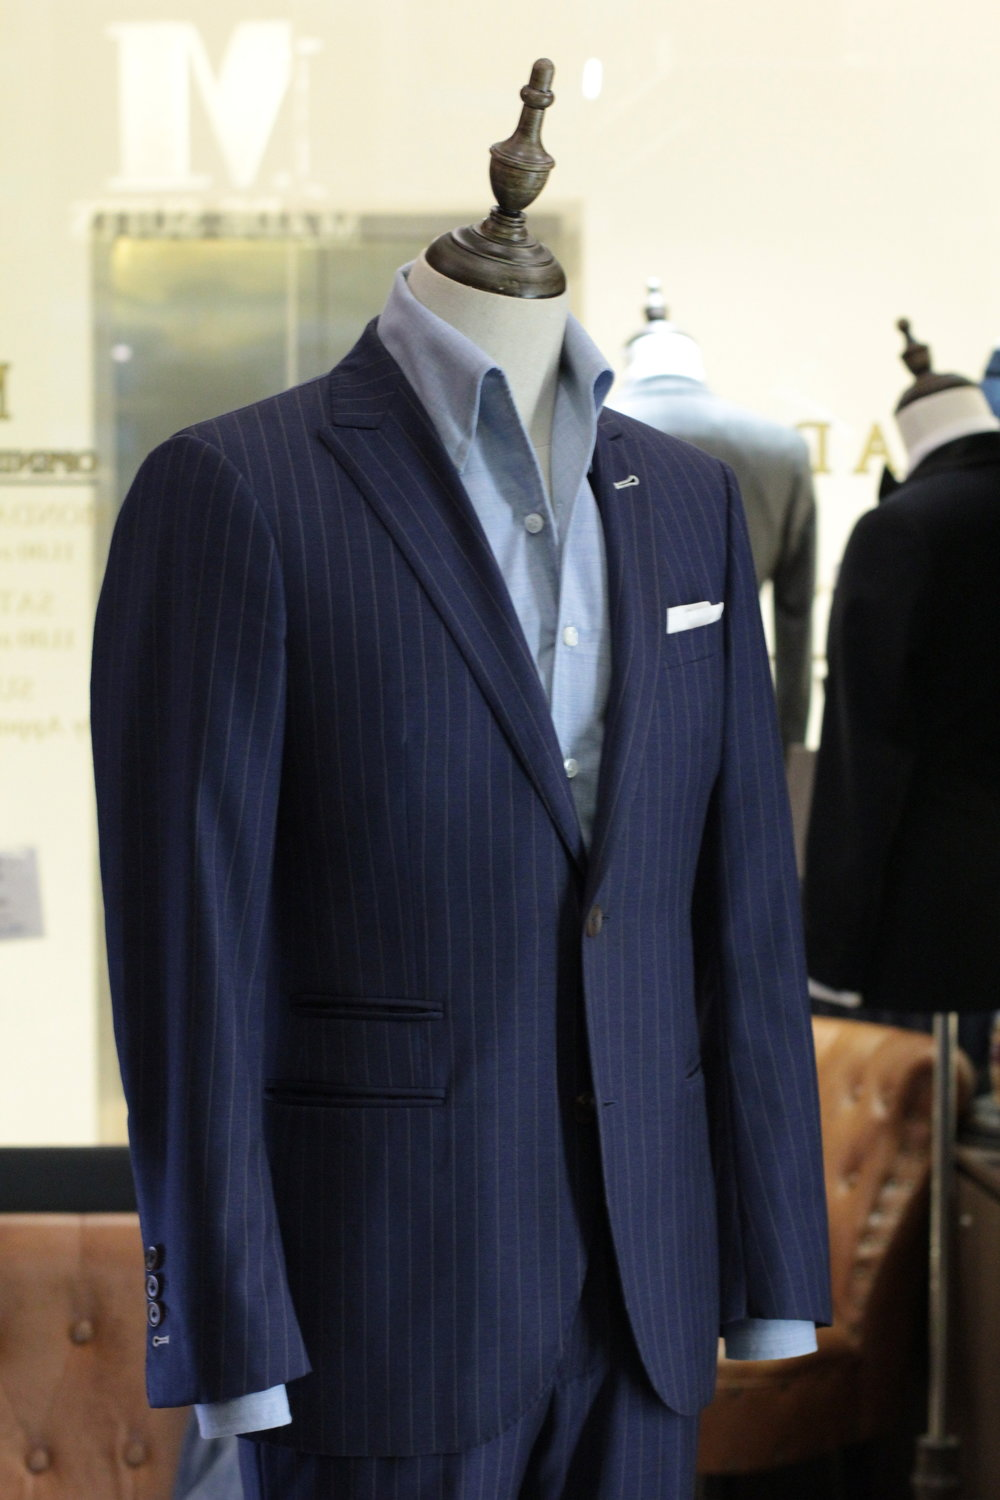 Mr Creative   Tailor Made Suits   Pinstripe Suits   Bespoke Suit Singapore   Singapore Tailor side view.JPG